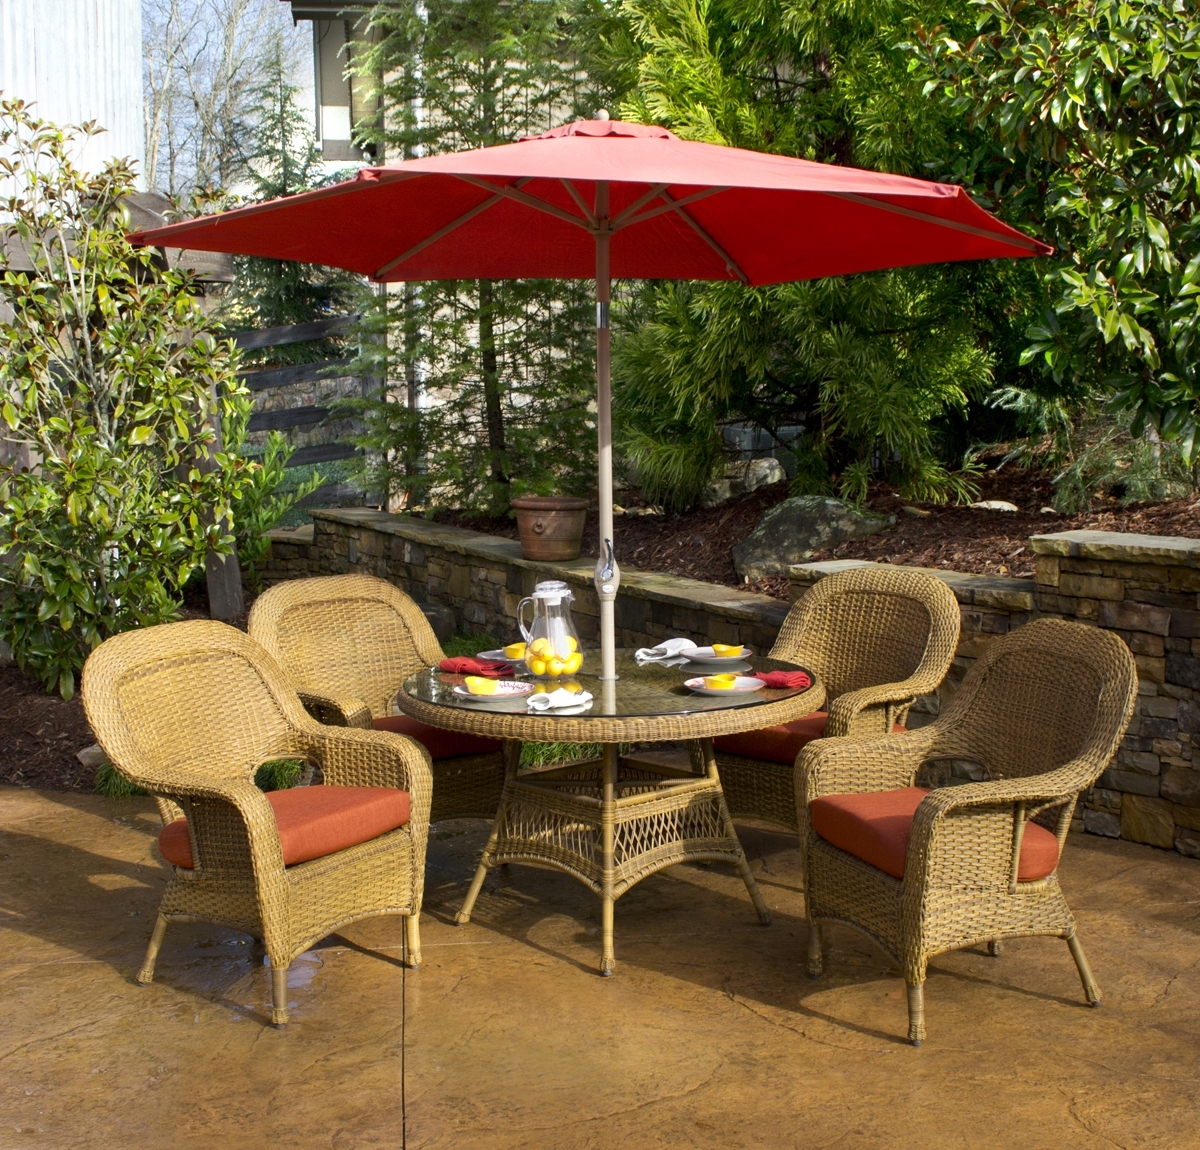 Current Patio Furniture Sets With Umbrellas Within Cute Umbrella For Patio Table : Life On The Move – Umbrella For (Gallery 11 of 20)